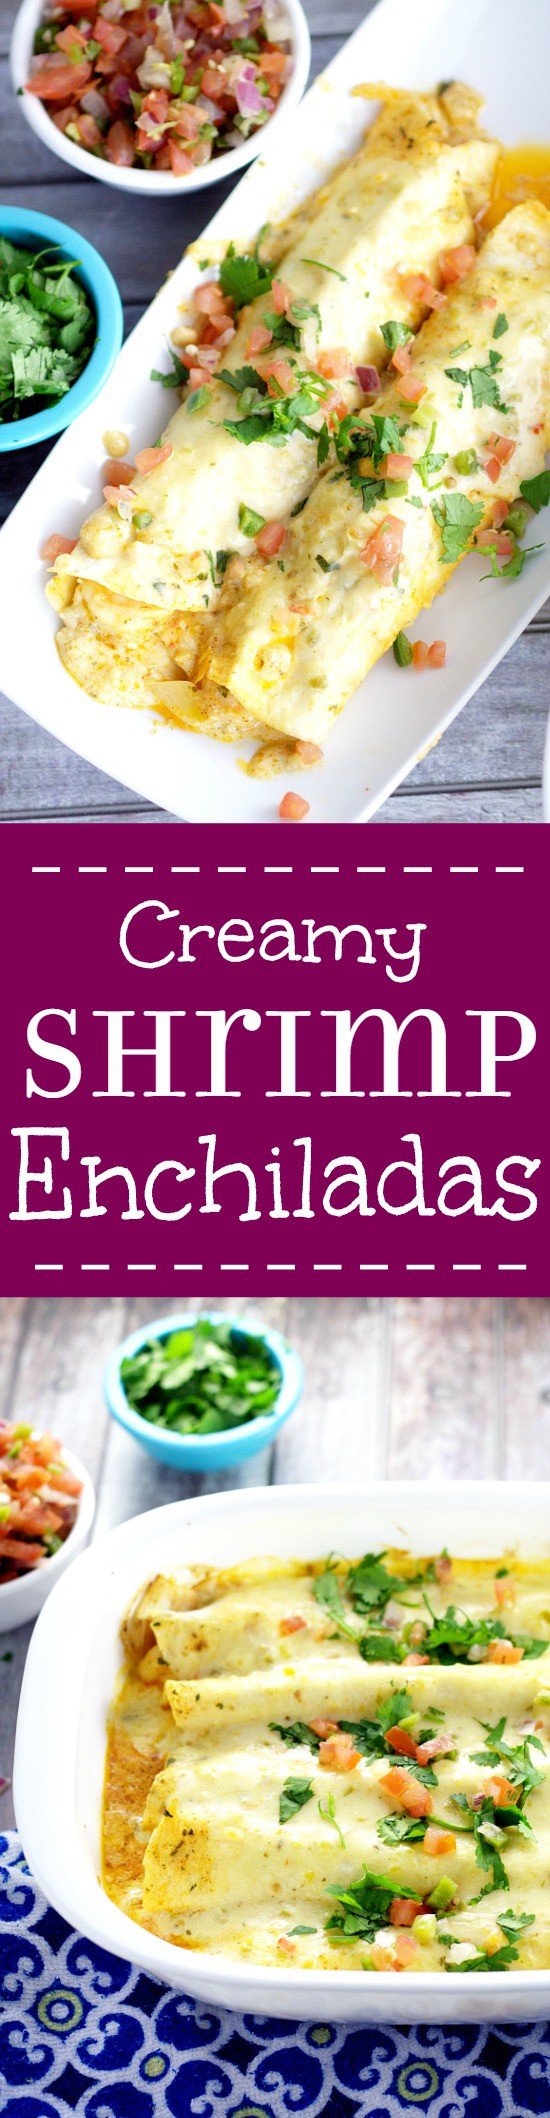 Creamy Shrimp Enchiladas - Creamy and rich with added pops of flavor from onions and peppers, these Creamy Shrimp Enchiladas are easy enough for family dinner and elegant enough for a date night in. These look fabulous!